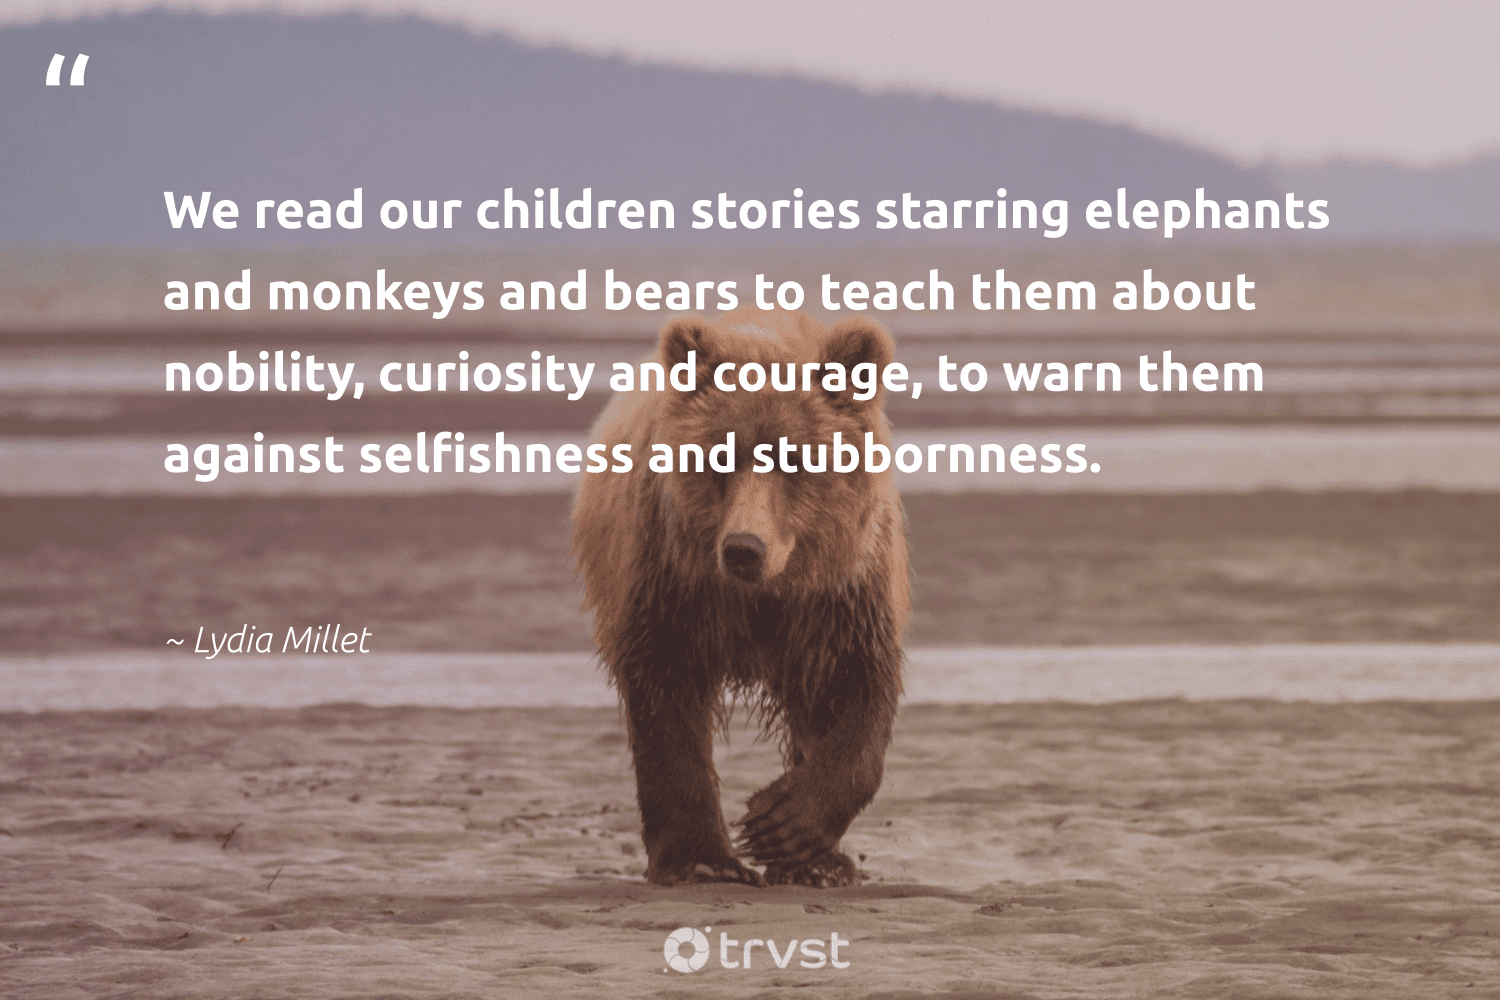 """""""We read our children stories starring elephants and monkeys and bears to teach them about nobility, curiosity and courage, to warn them against selfishness and stubbornness.""""  - Lydia Millet #trvst #quotes #children #elephants #monkeys #bears #bearlove #dogood #amazingworld #bethechange #conservation #planetearthfirst"""